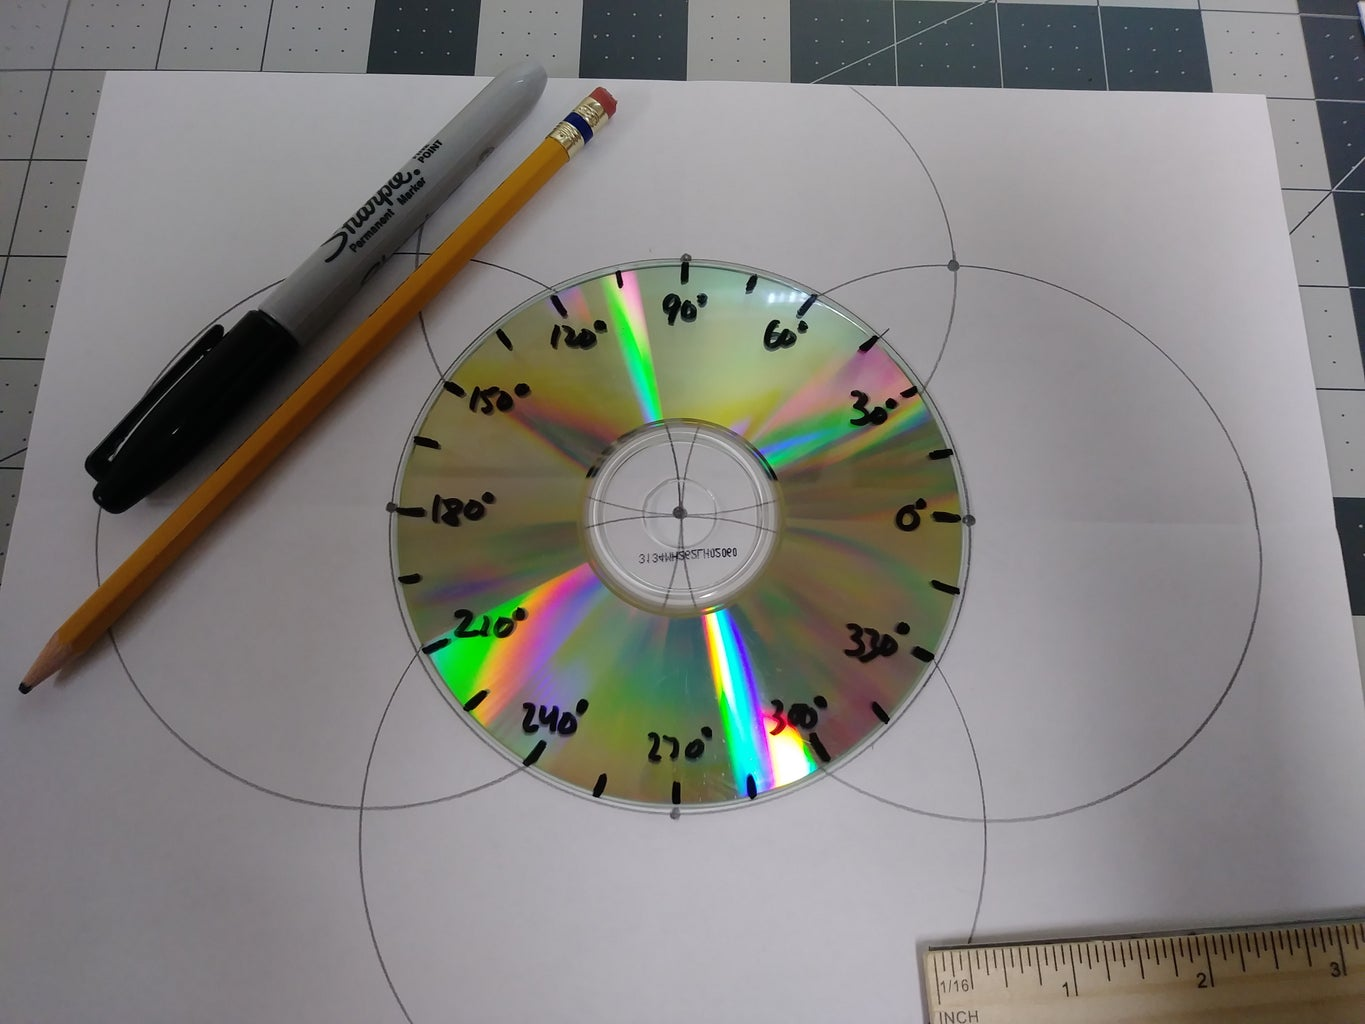 Marking the Angle Measures on the CD (The Multiples of 15°)